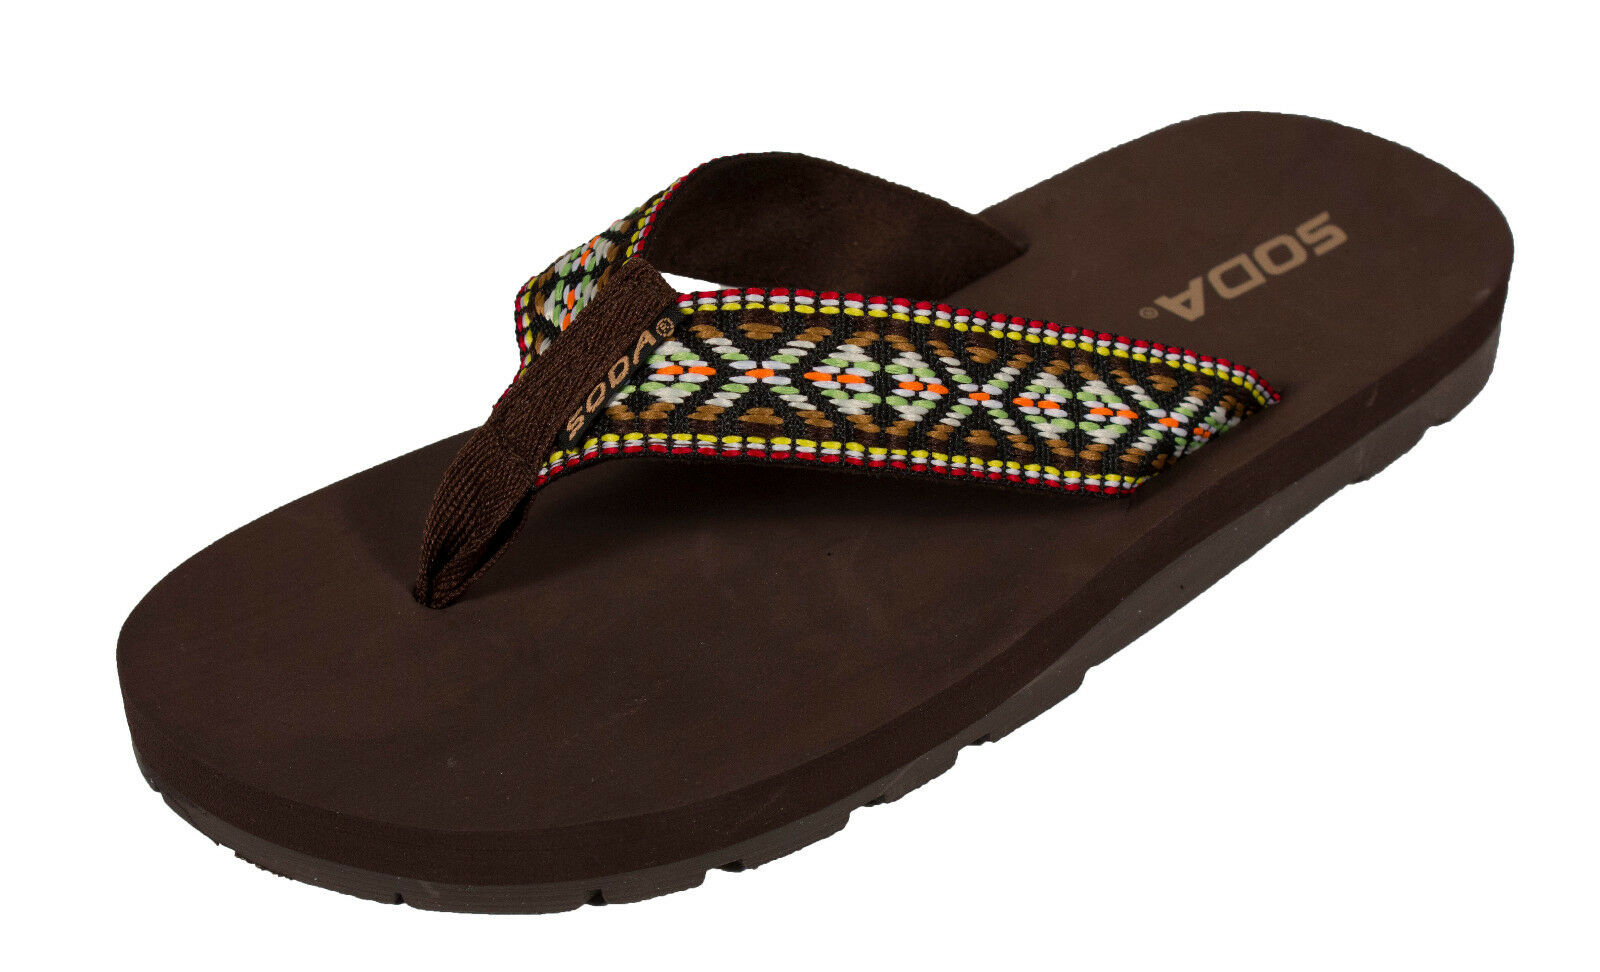 Benton! Soda Women's Multi Flip-Flop Thong Flat Sandal in Brown Multi Women's Color EVA cafcca